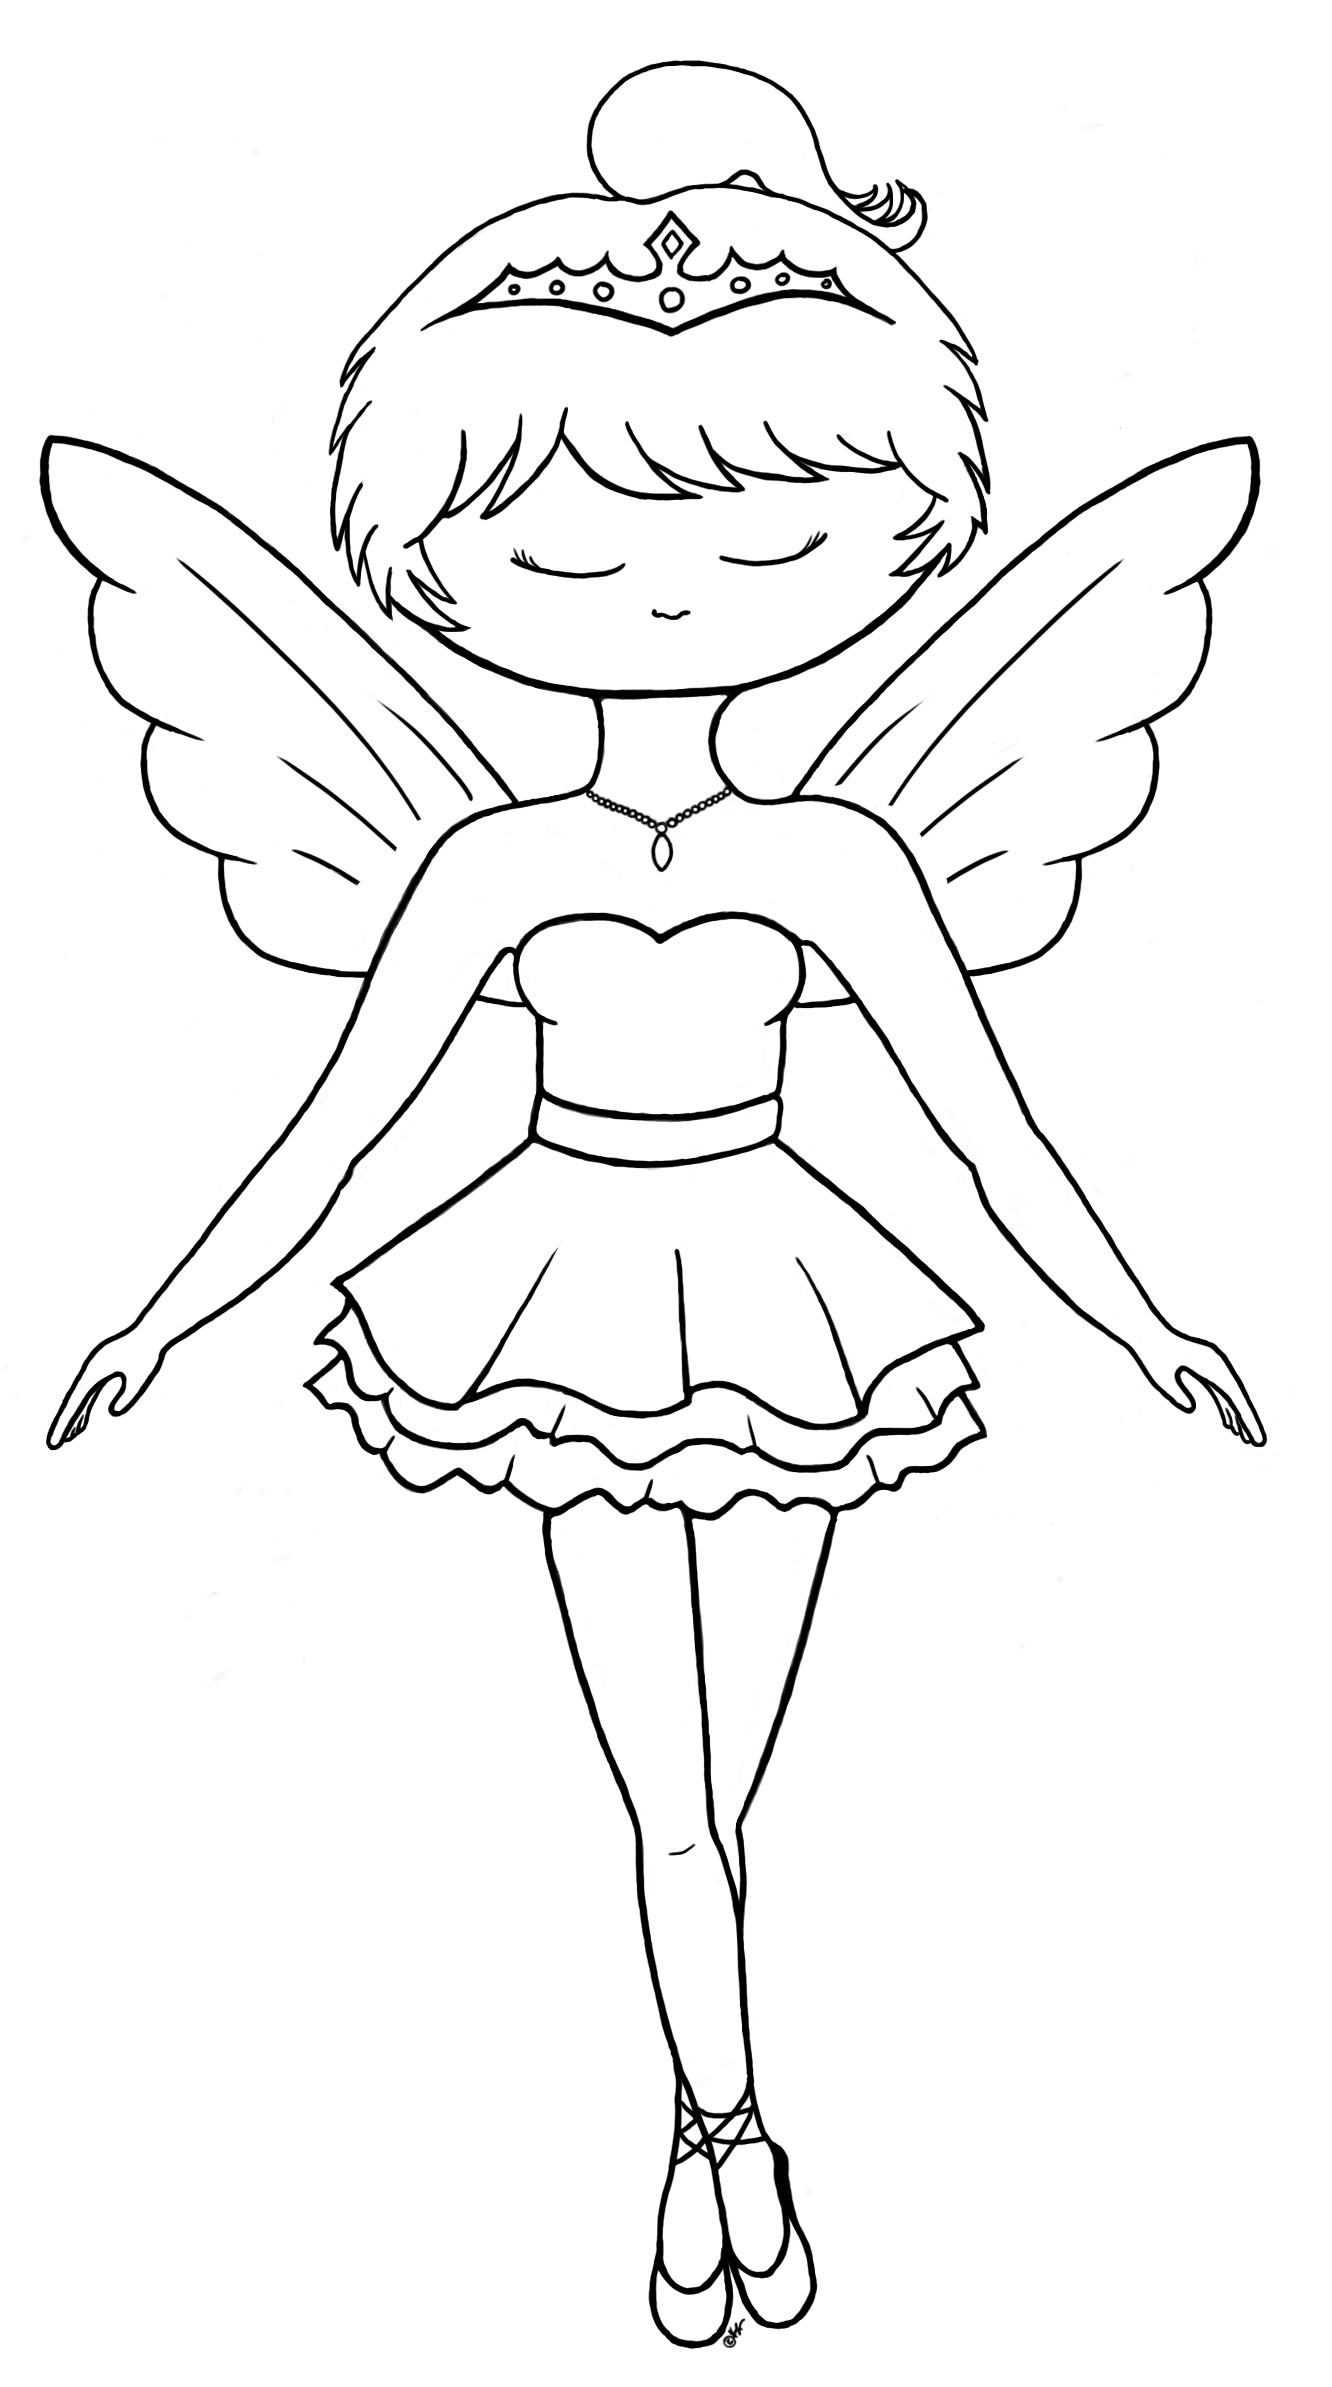 dance games and coloring pages - photo#23